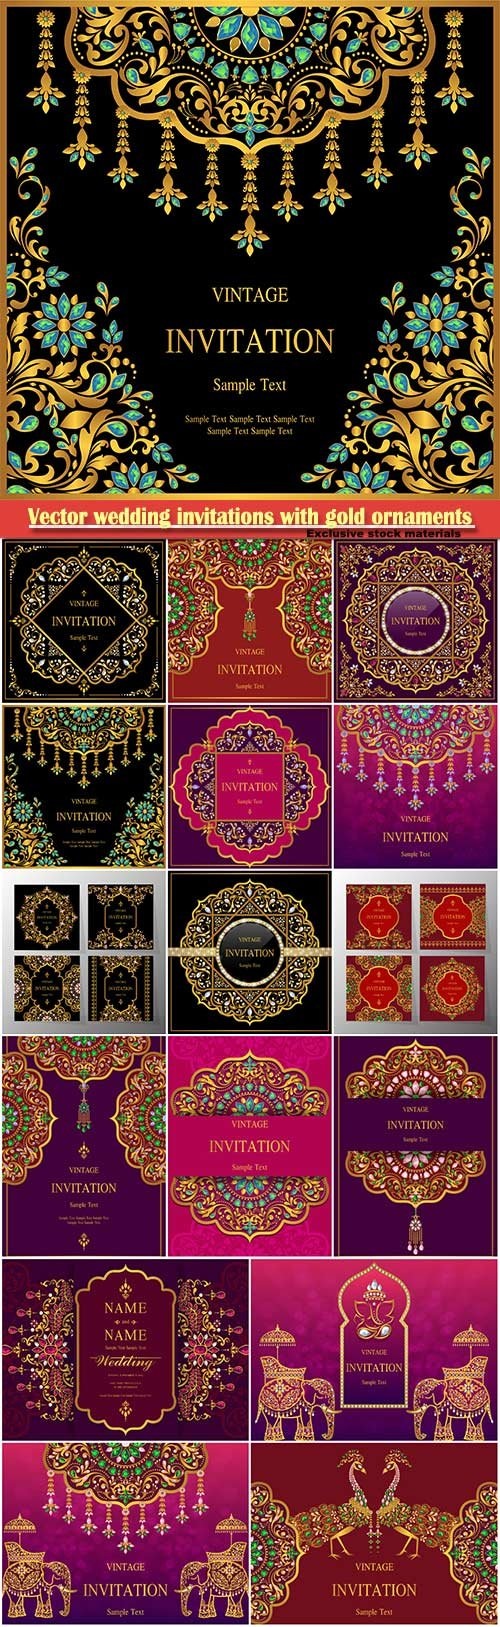 Vector wedding invitations with elegant gold ornaments